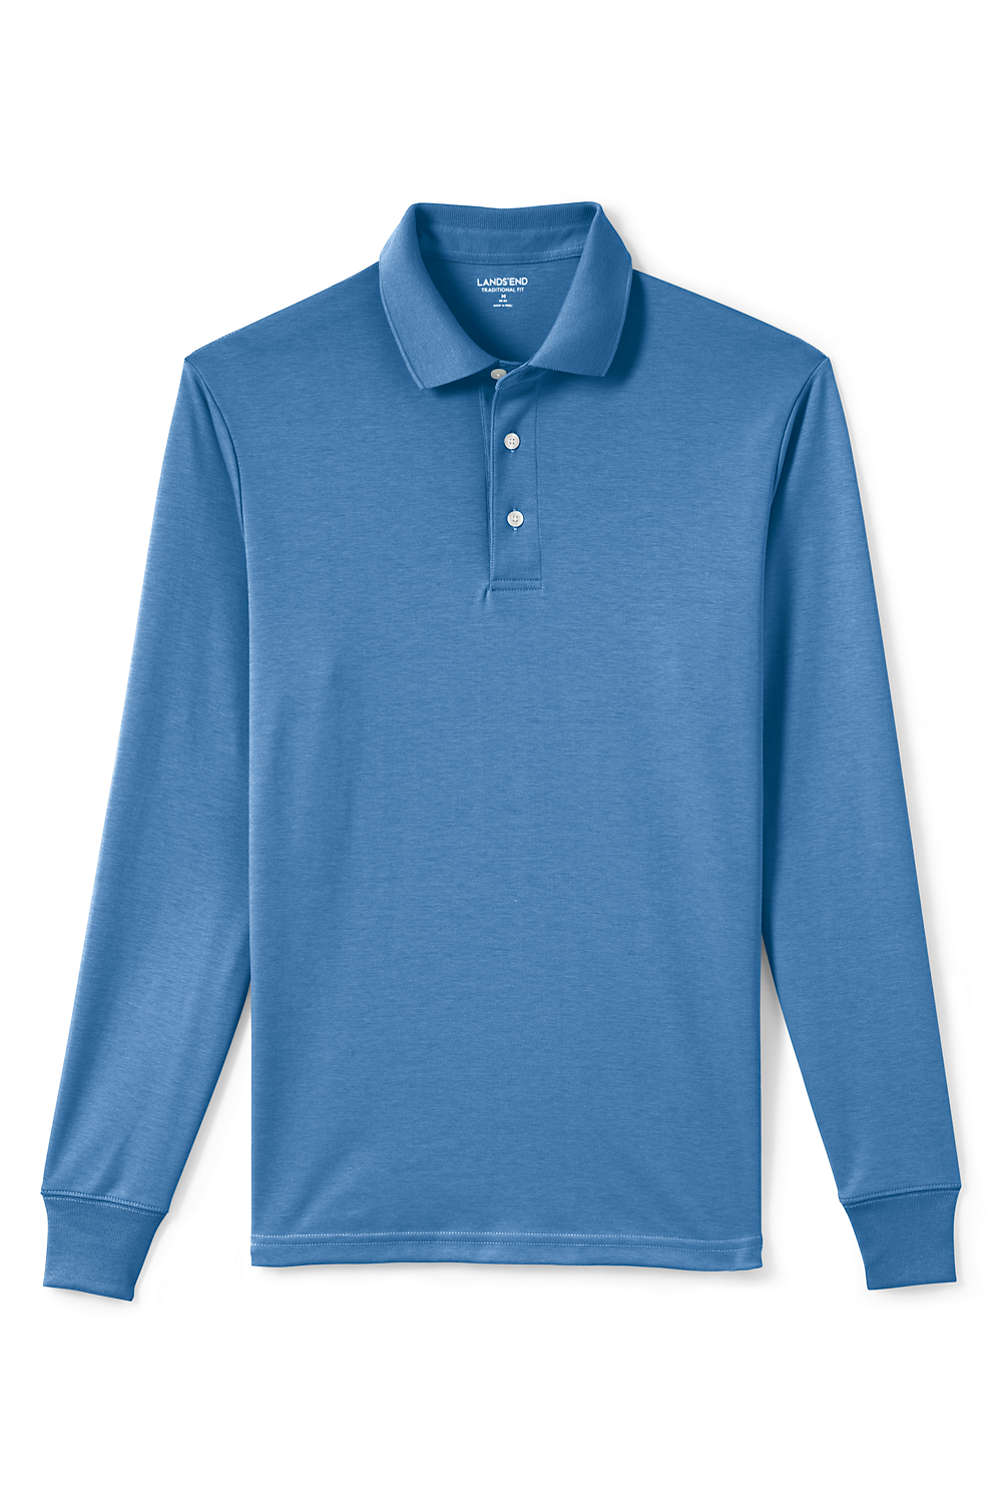 Mens Supima Polo Shirt From Lands End